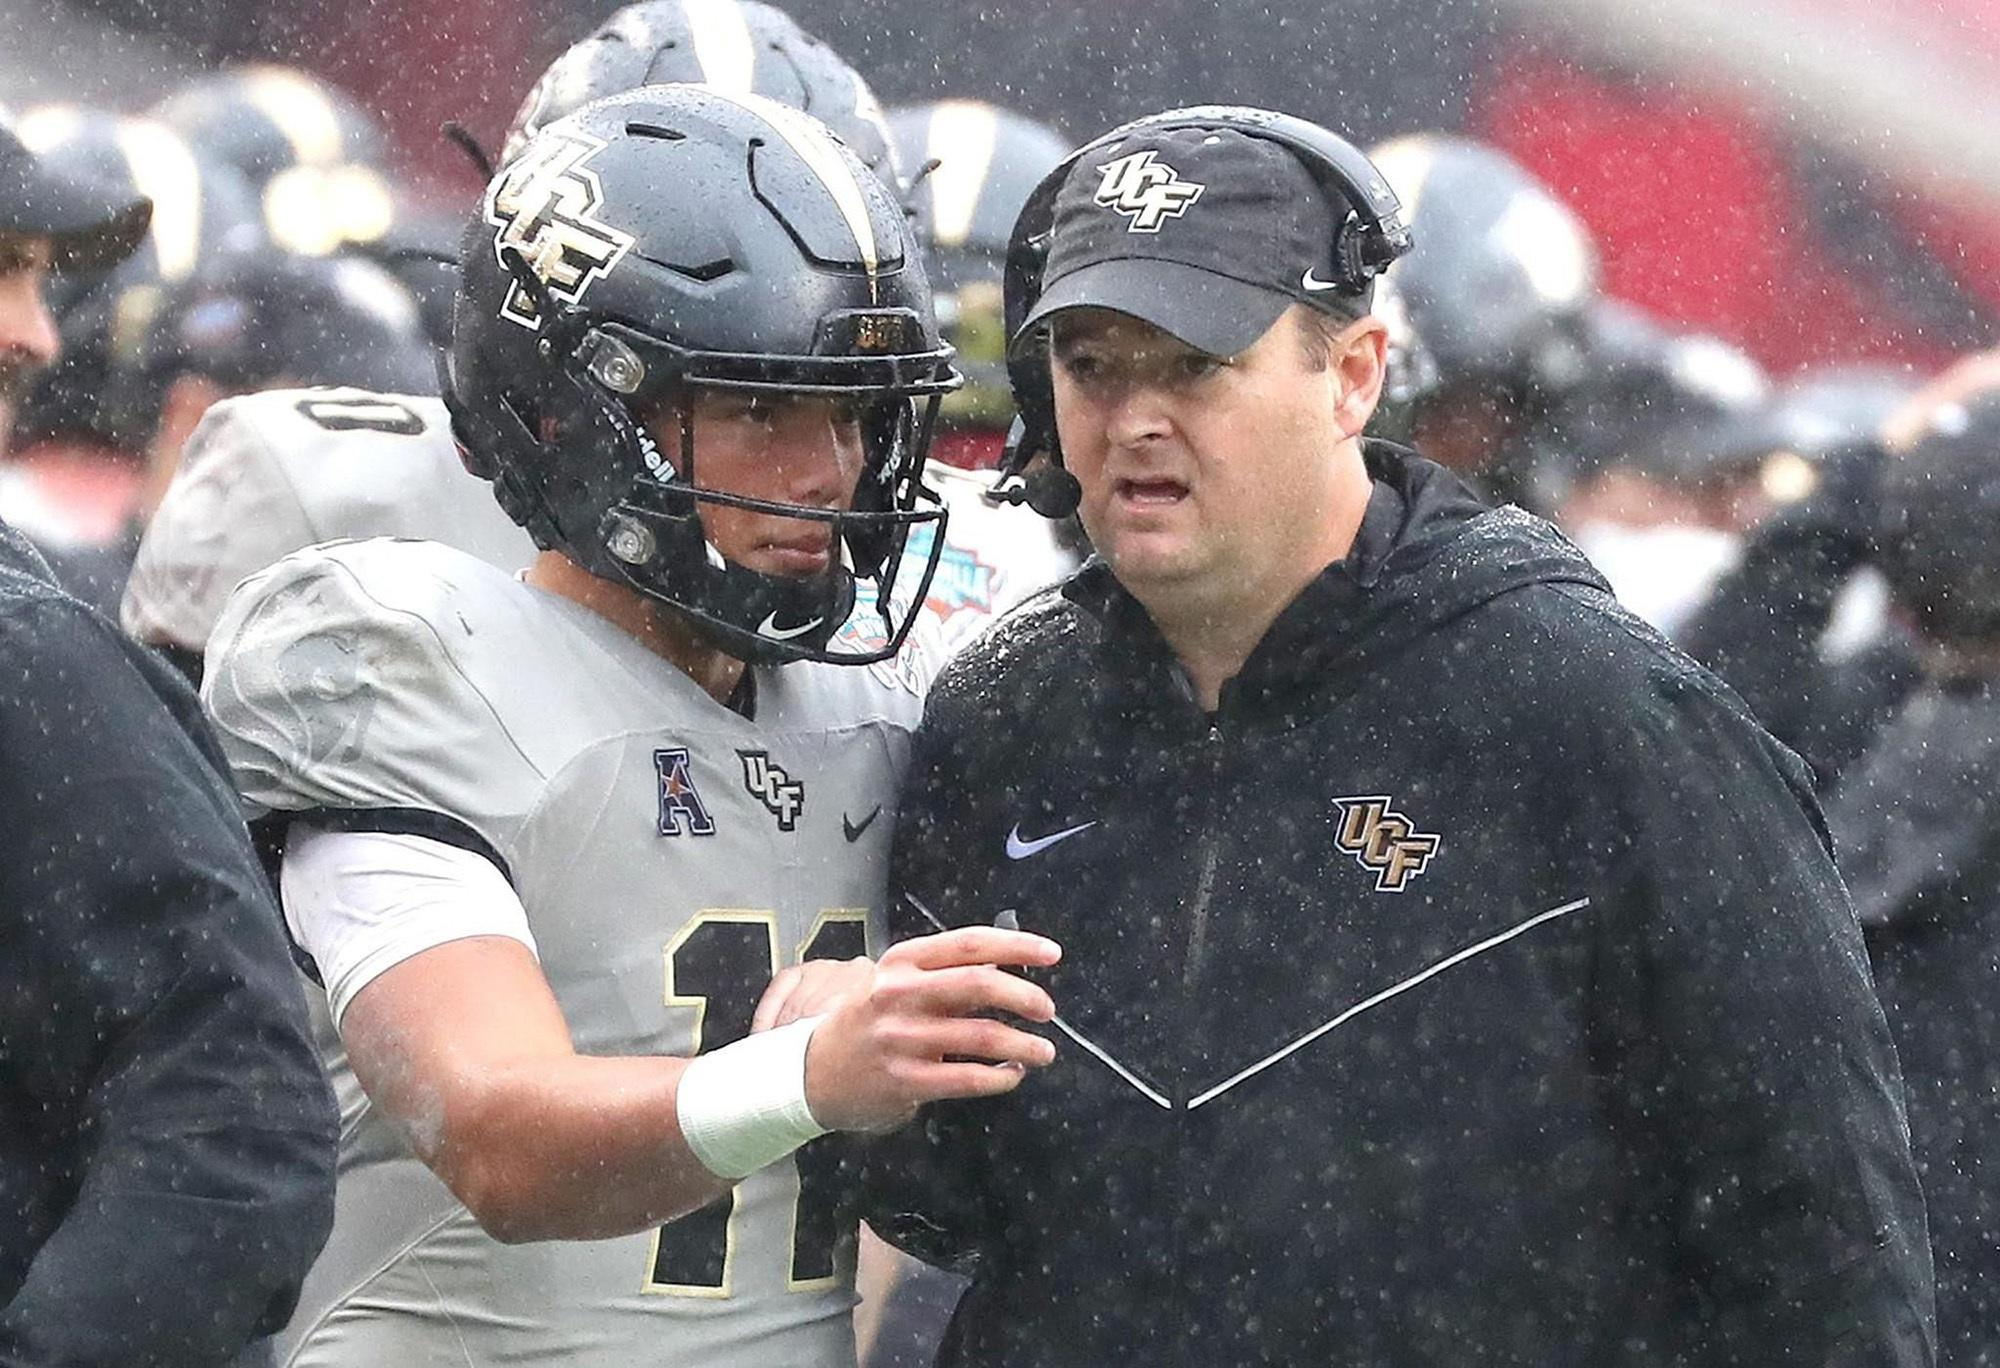 UCF QB Dillon Gabriel stays hot, leads Knights to win over Tulane